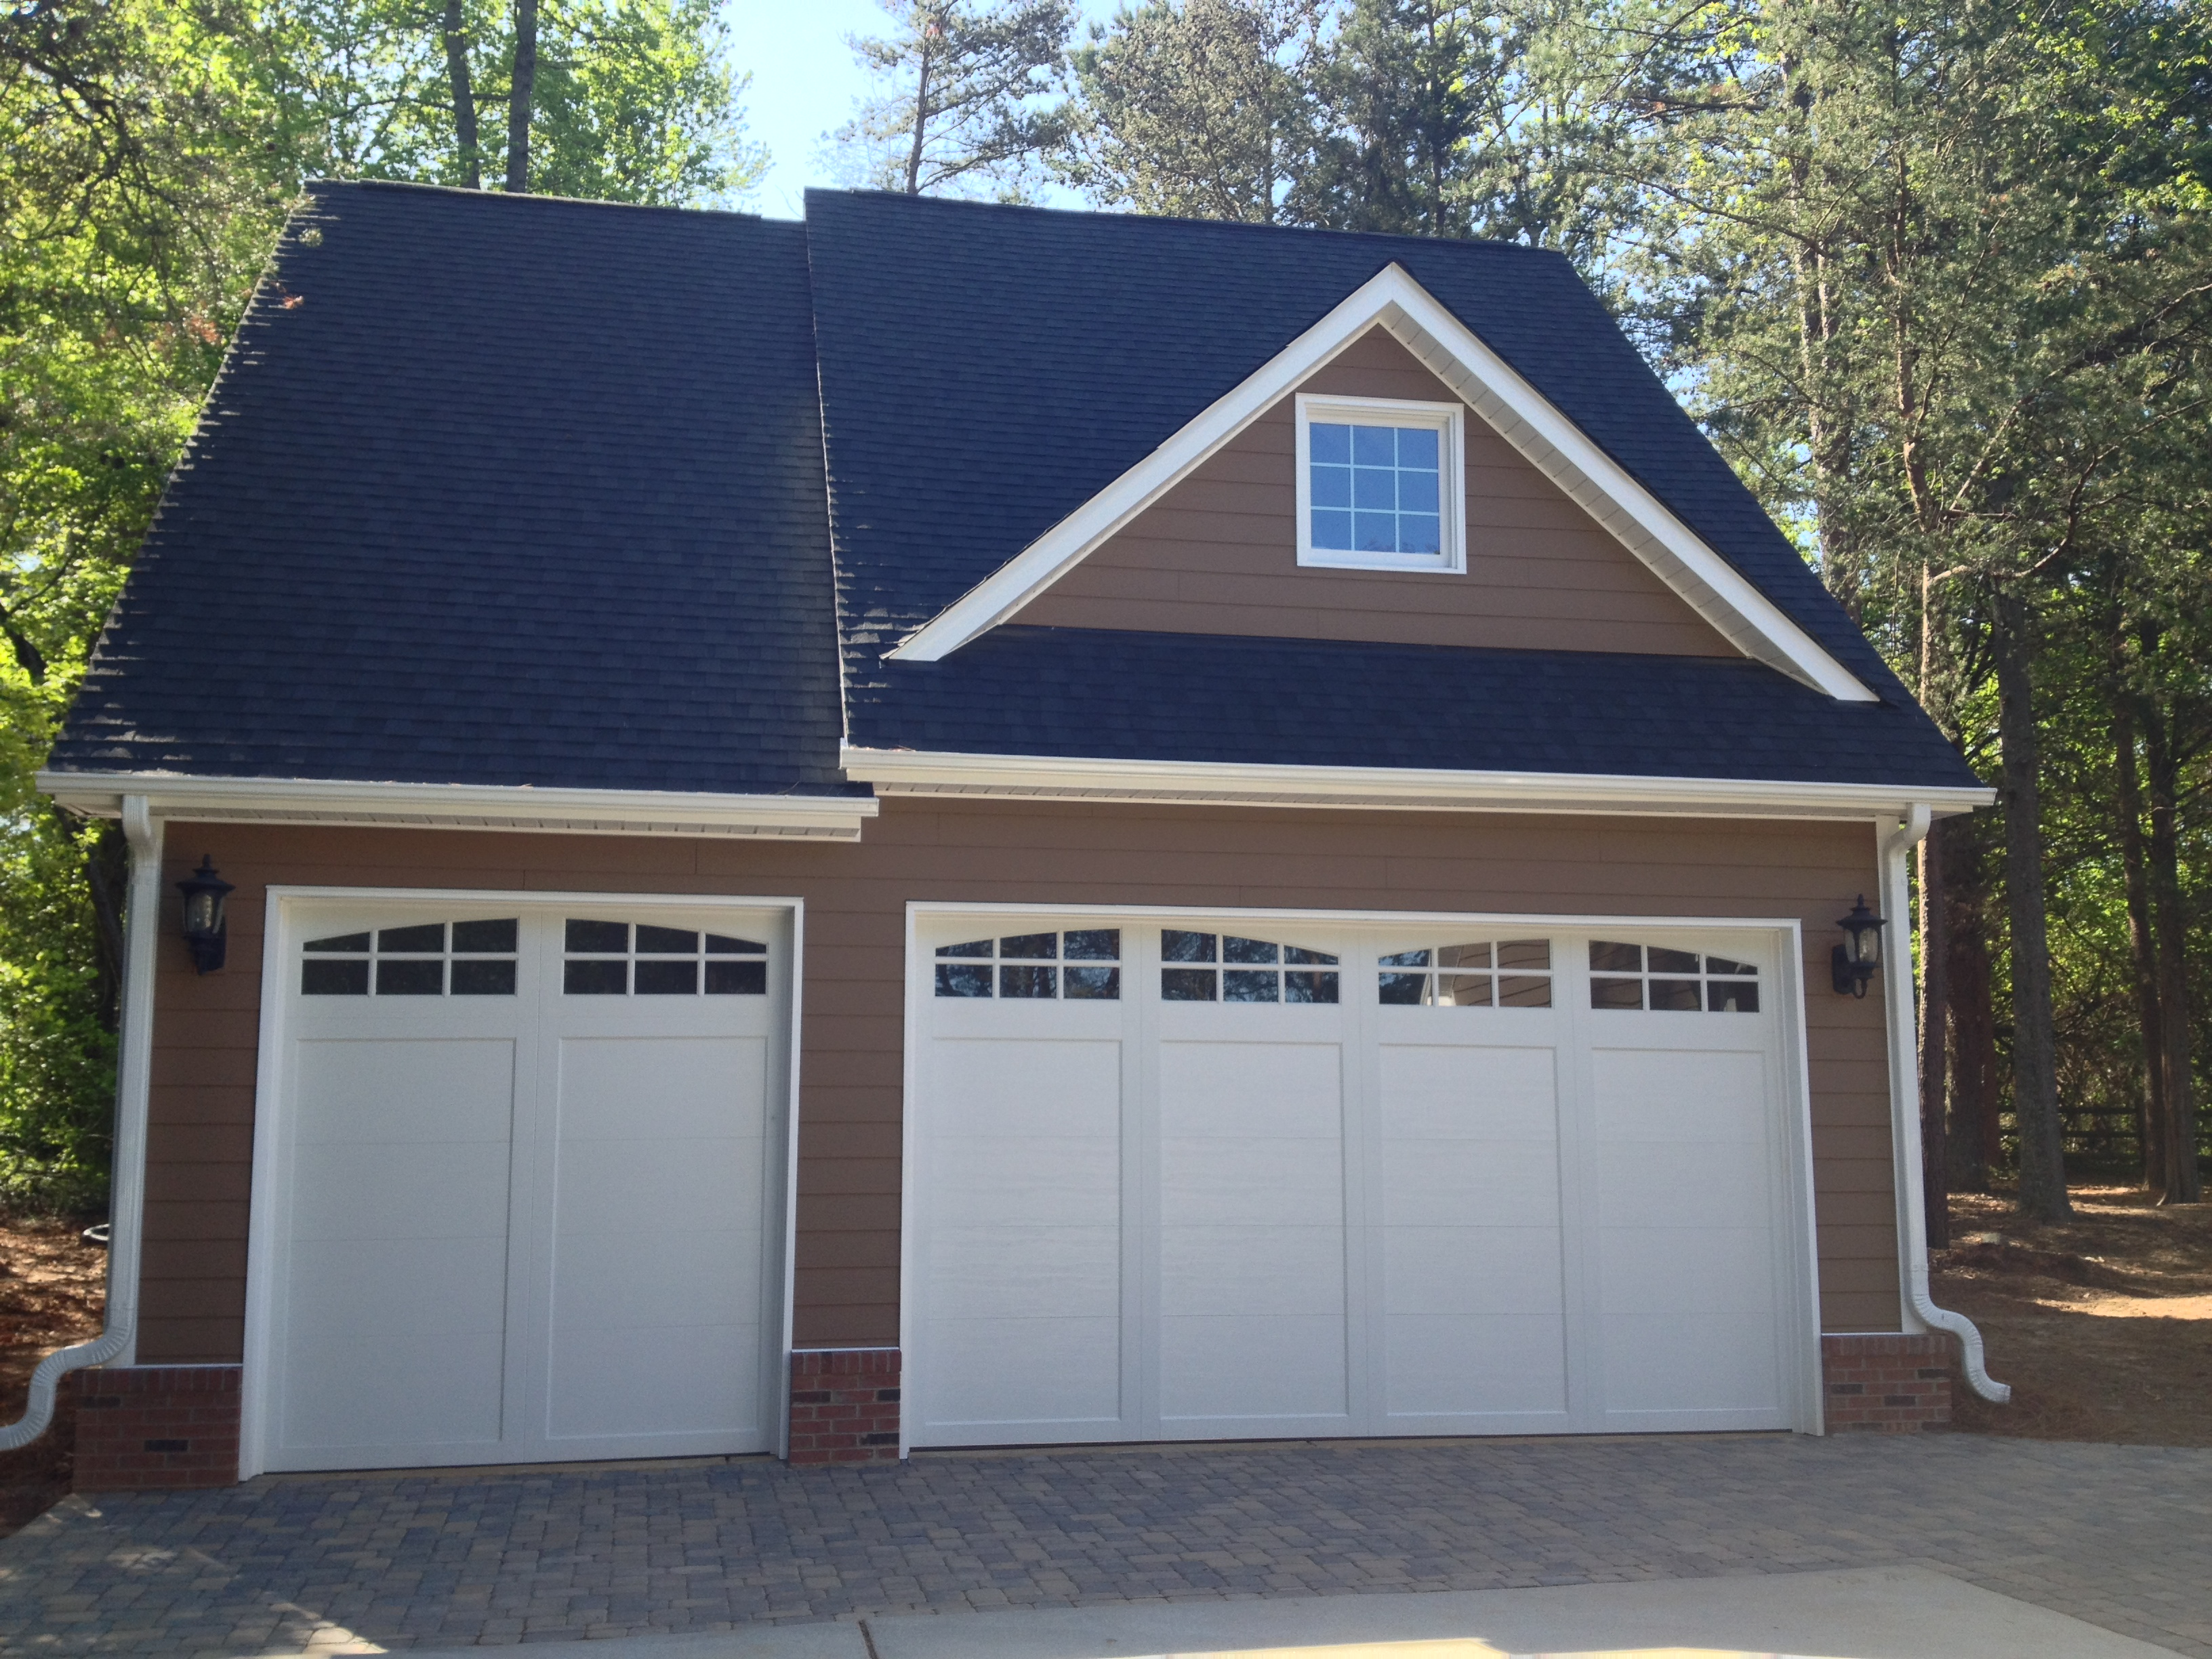 3 car detached garage cornelius nc henderson building for Garage building designs